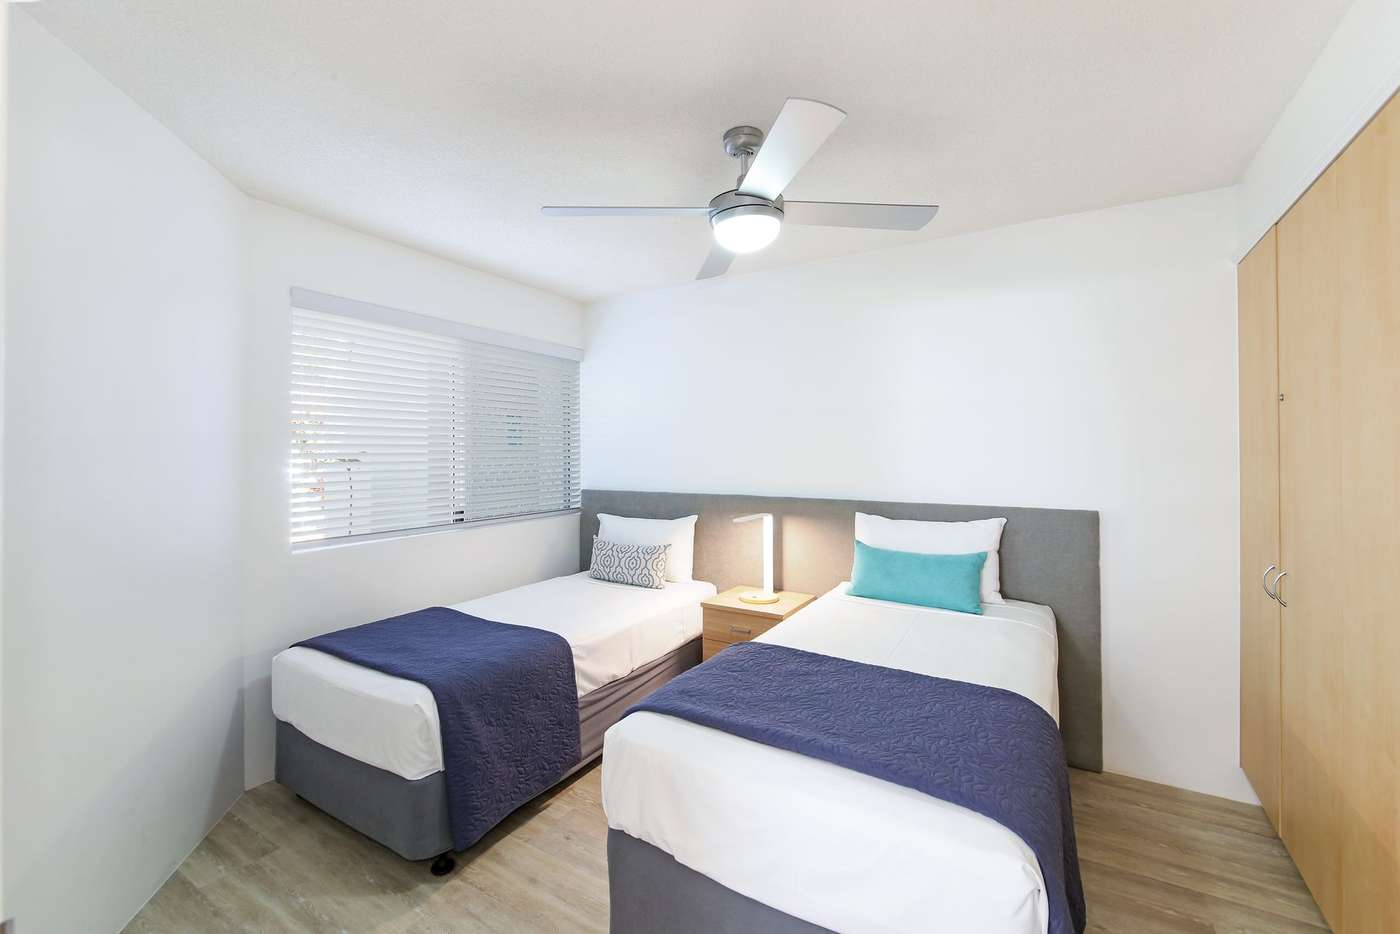 Sixth view of Homely apartment listing, 2/221-227 Gympie Terrace, Noosaville QLD 4566